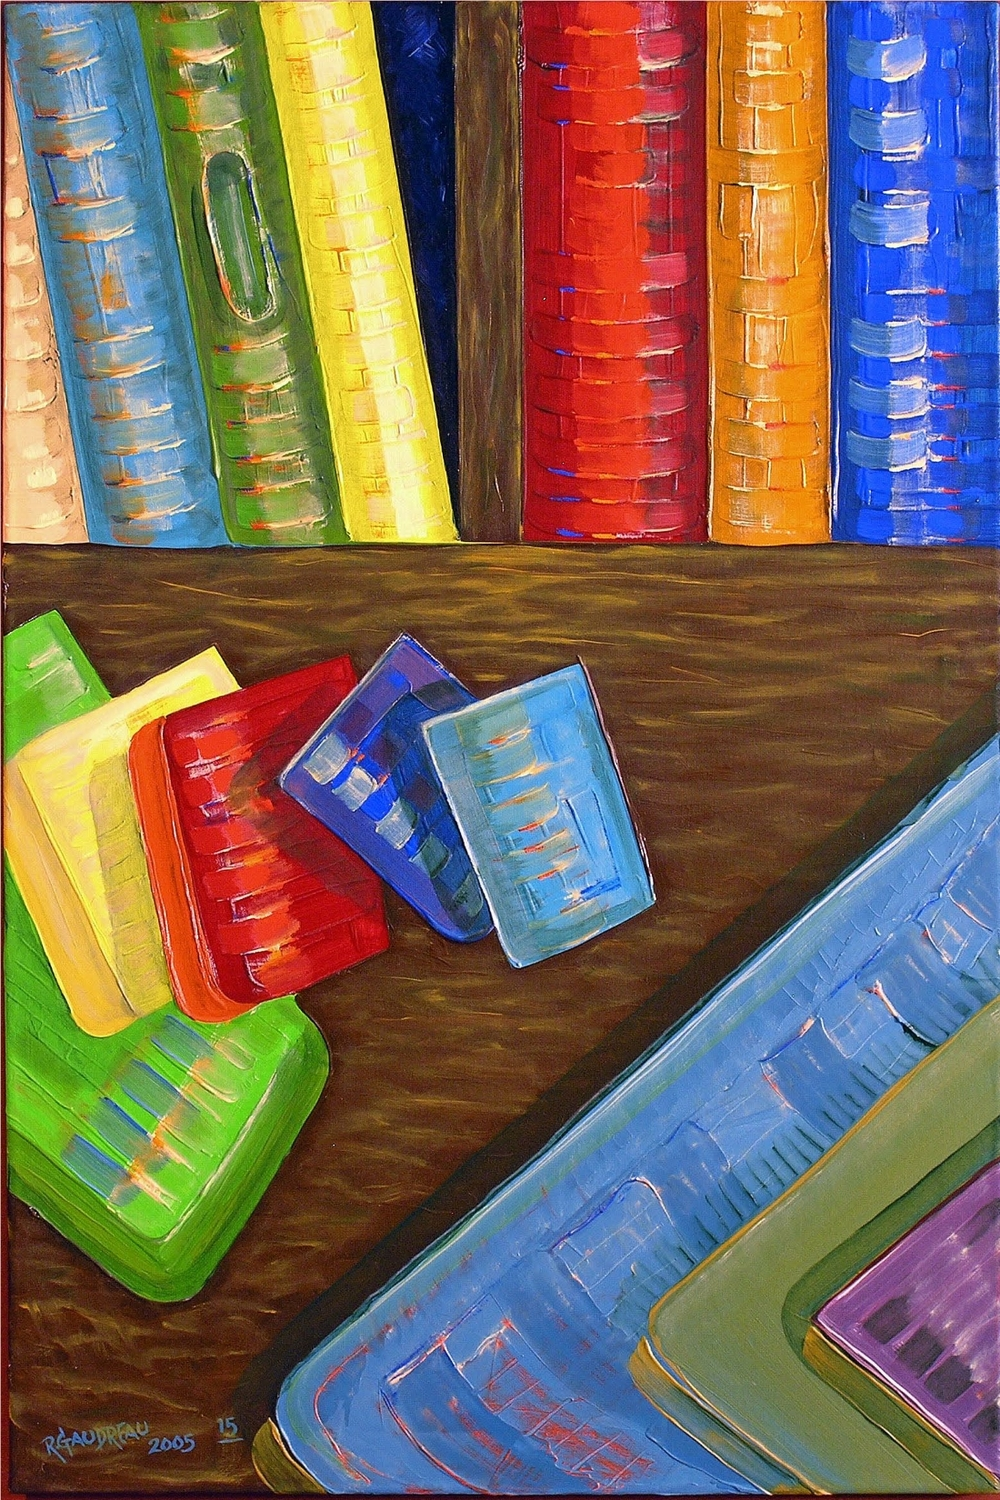 15  Books 2006 oil on canvas 36 x 24 inches